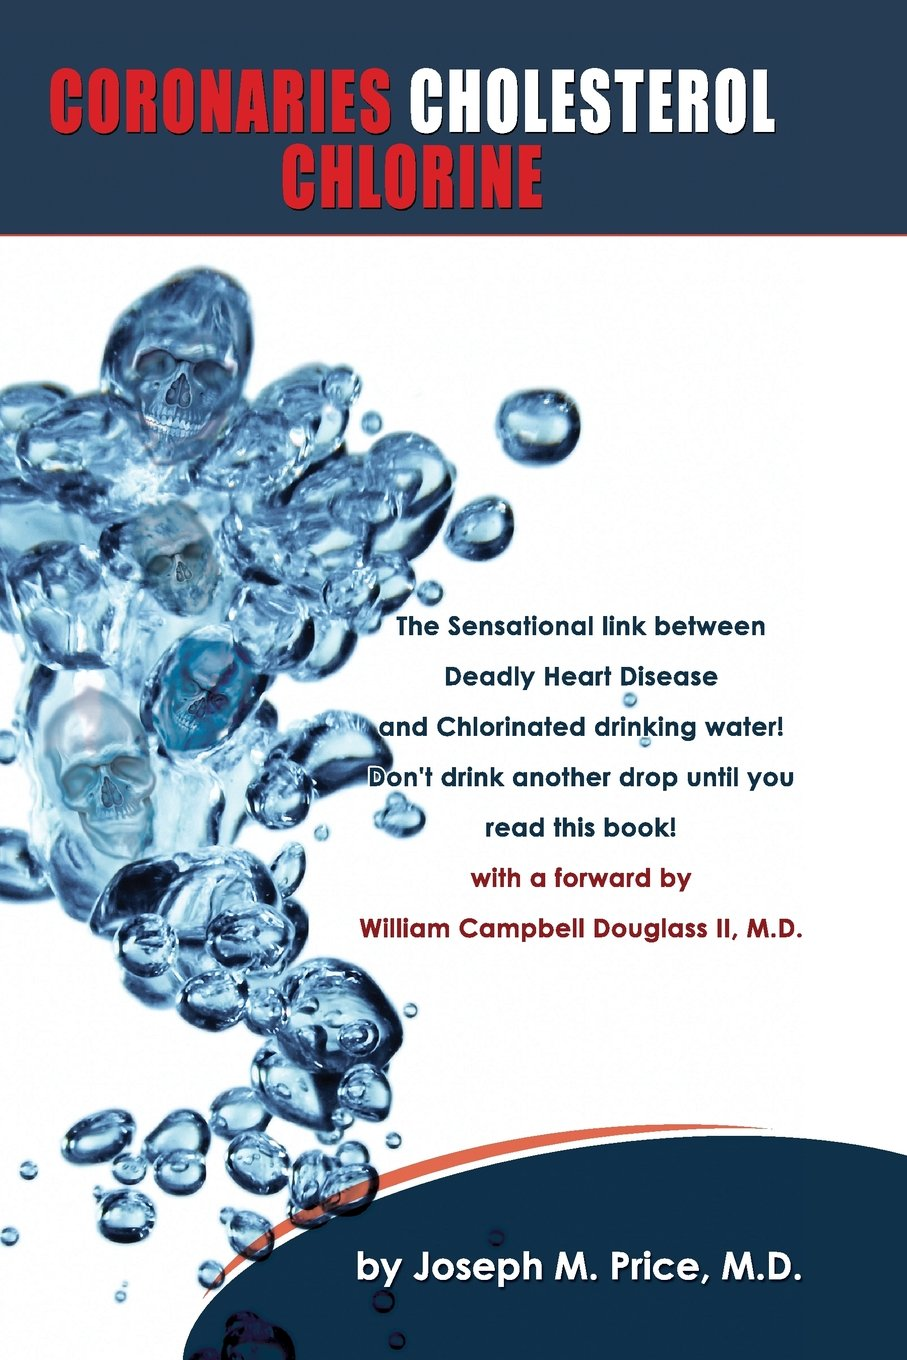 "Coronaries, cholesterol, chlorine - By Dr. Joseph M. Price, M.D.The Sensational link between Deadly Heart Disease and Chlorinated drinking water! Don't drink anther drop until you read this book! Dr. Joseph M. Price has long held that the chlorine in our drinking water – not the cholesterol in our food – is the major cause of coronary disease. In his courageous book he challenges the medical establishment with his own well documented theory directly linking deadly heart disease with the deadly poison chlorine.After reading this book, you'll never drink 'tap water' again. Dr. Price demonstrates, with fact after fact, proof after proof, that you can eat the foods you want to eat, and avoid heart disease by simply following his guidelines for avoiding chlorinated drinking water. ""One of the top ten nutrition books of the 20th Century…an amazingly original toxicology book vital to every living soul on this planet"" Dr. William Campbell Douglass II, M.D. www.drdouglass.com"